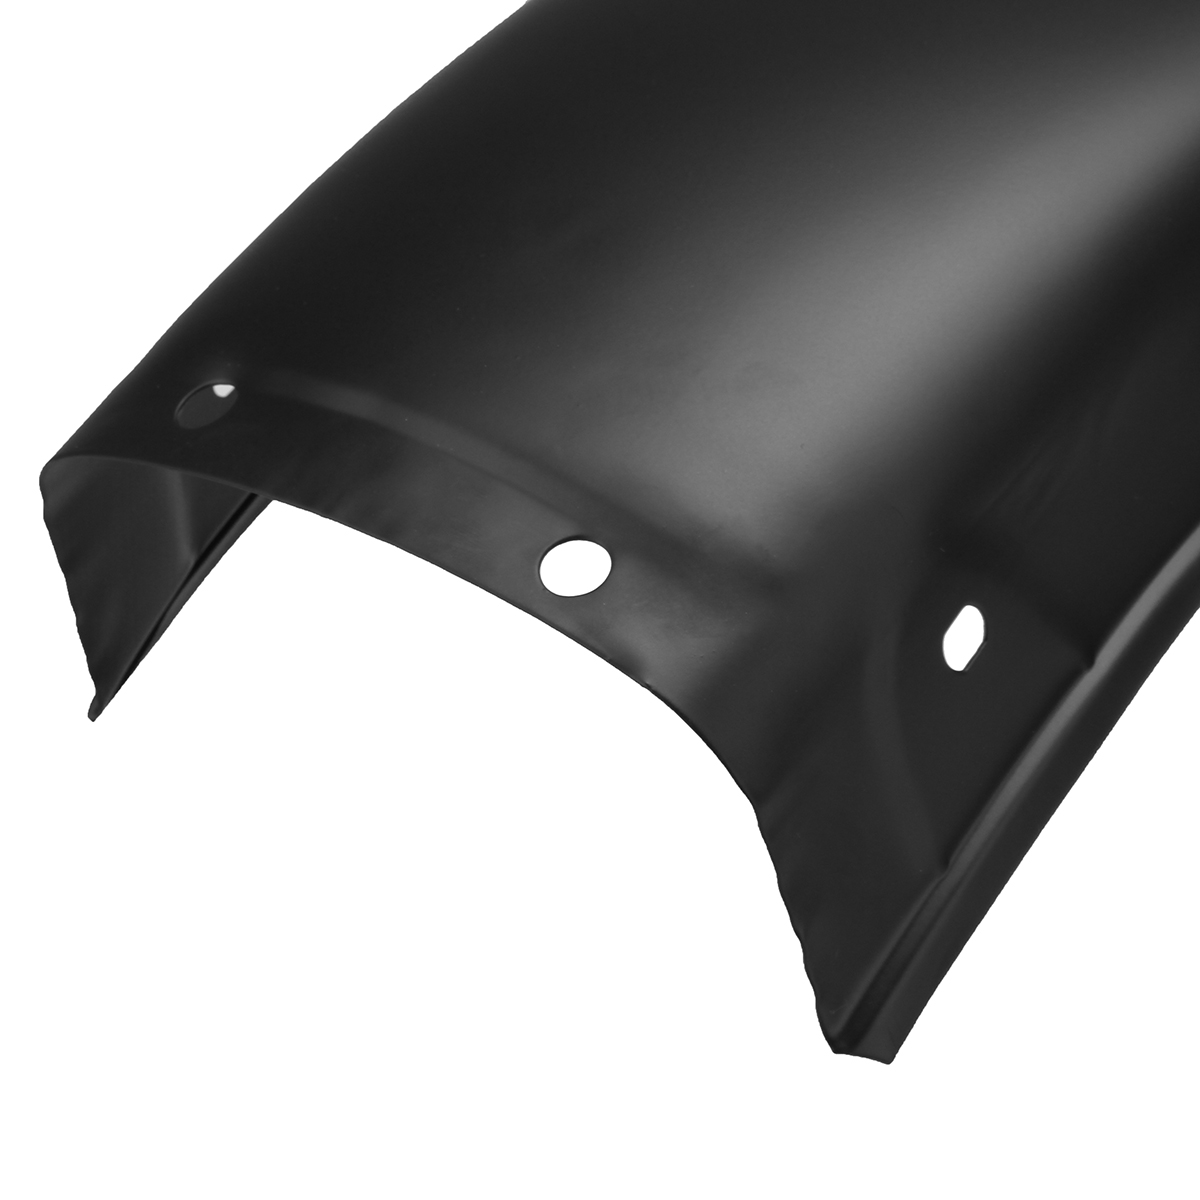 Motorcycle Rear Mudguard Fairing Mug Guard Cover For Suzuki GN125 GN250 Black Chrome